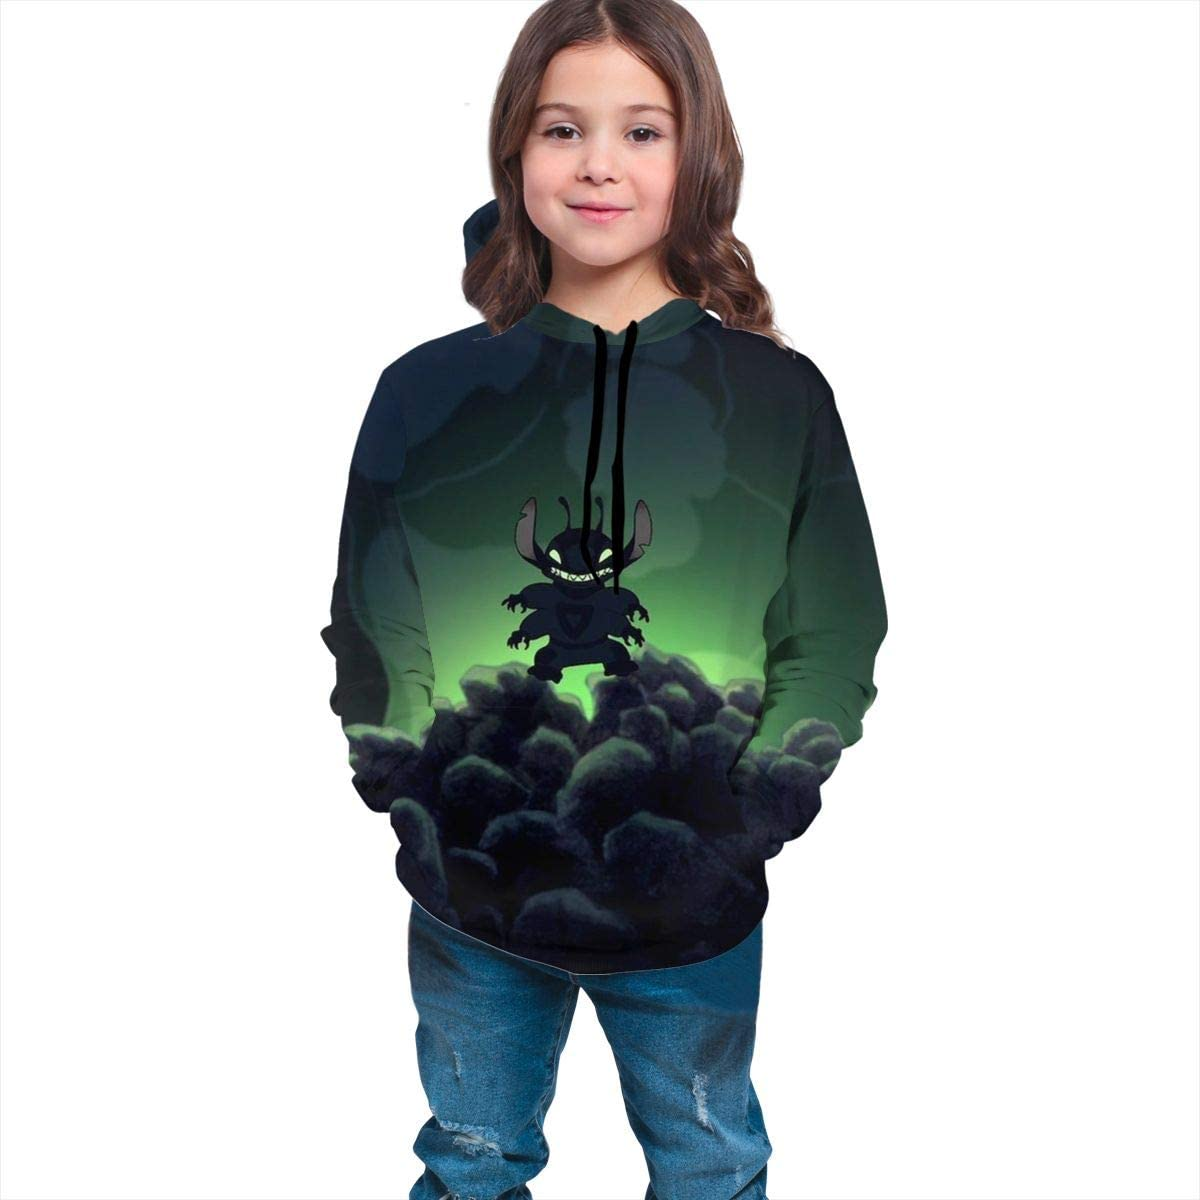 ZISIXI S-Titch Unisex Youth Casual Hooded Teens Long Sleeve Pullover Hoodie Sweatshirts for Kids Boys and Girls